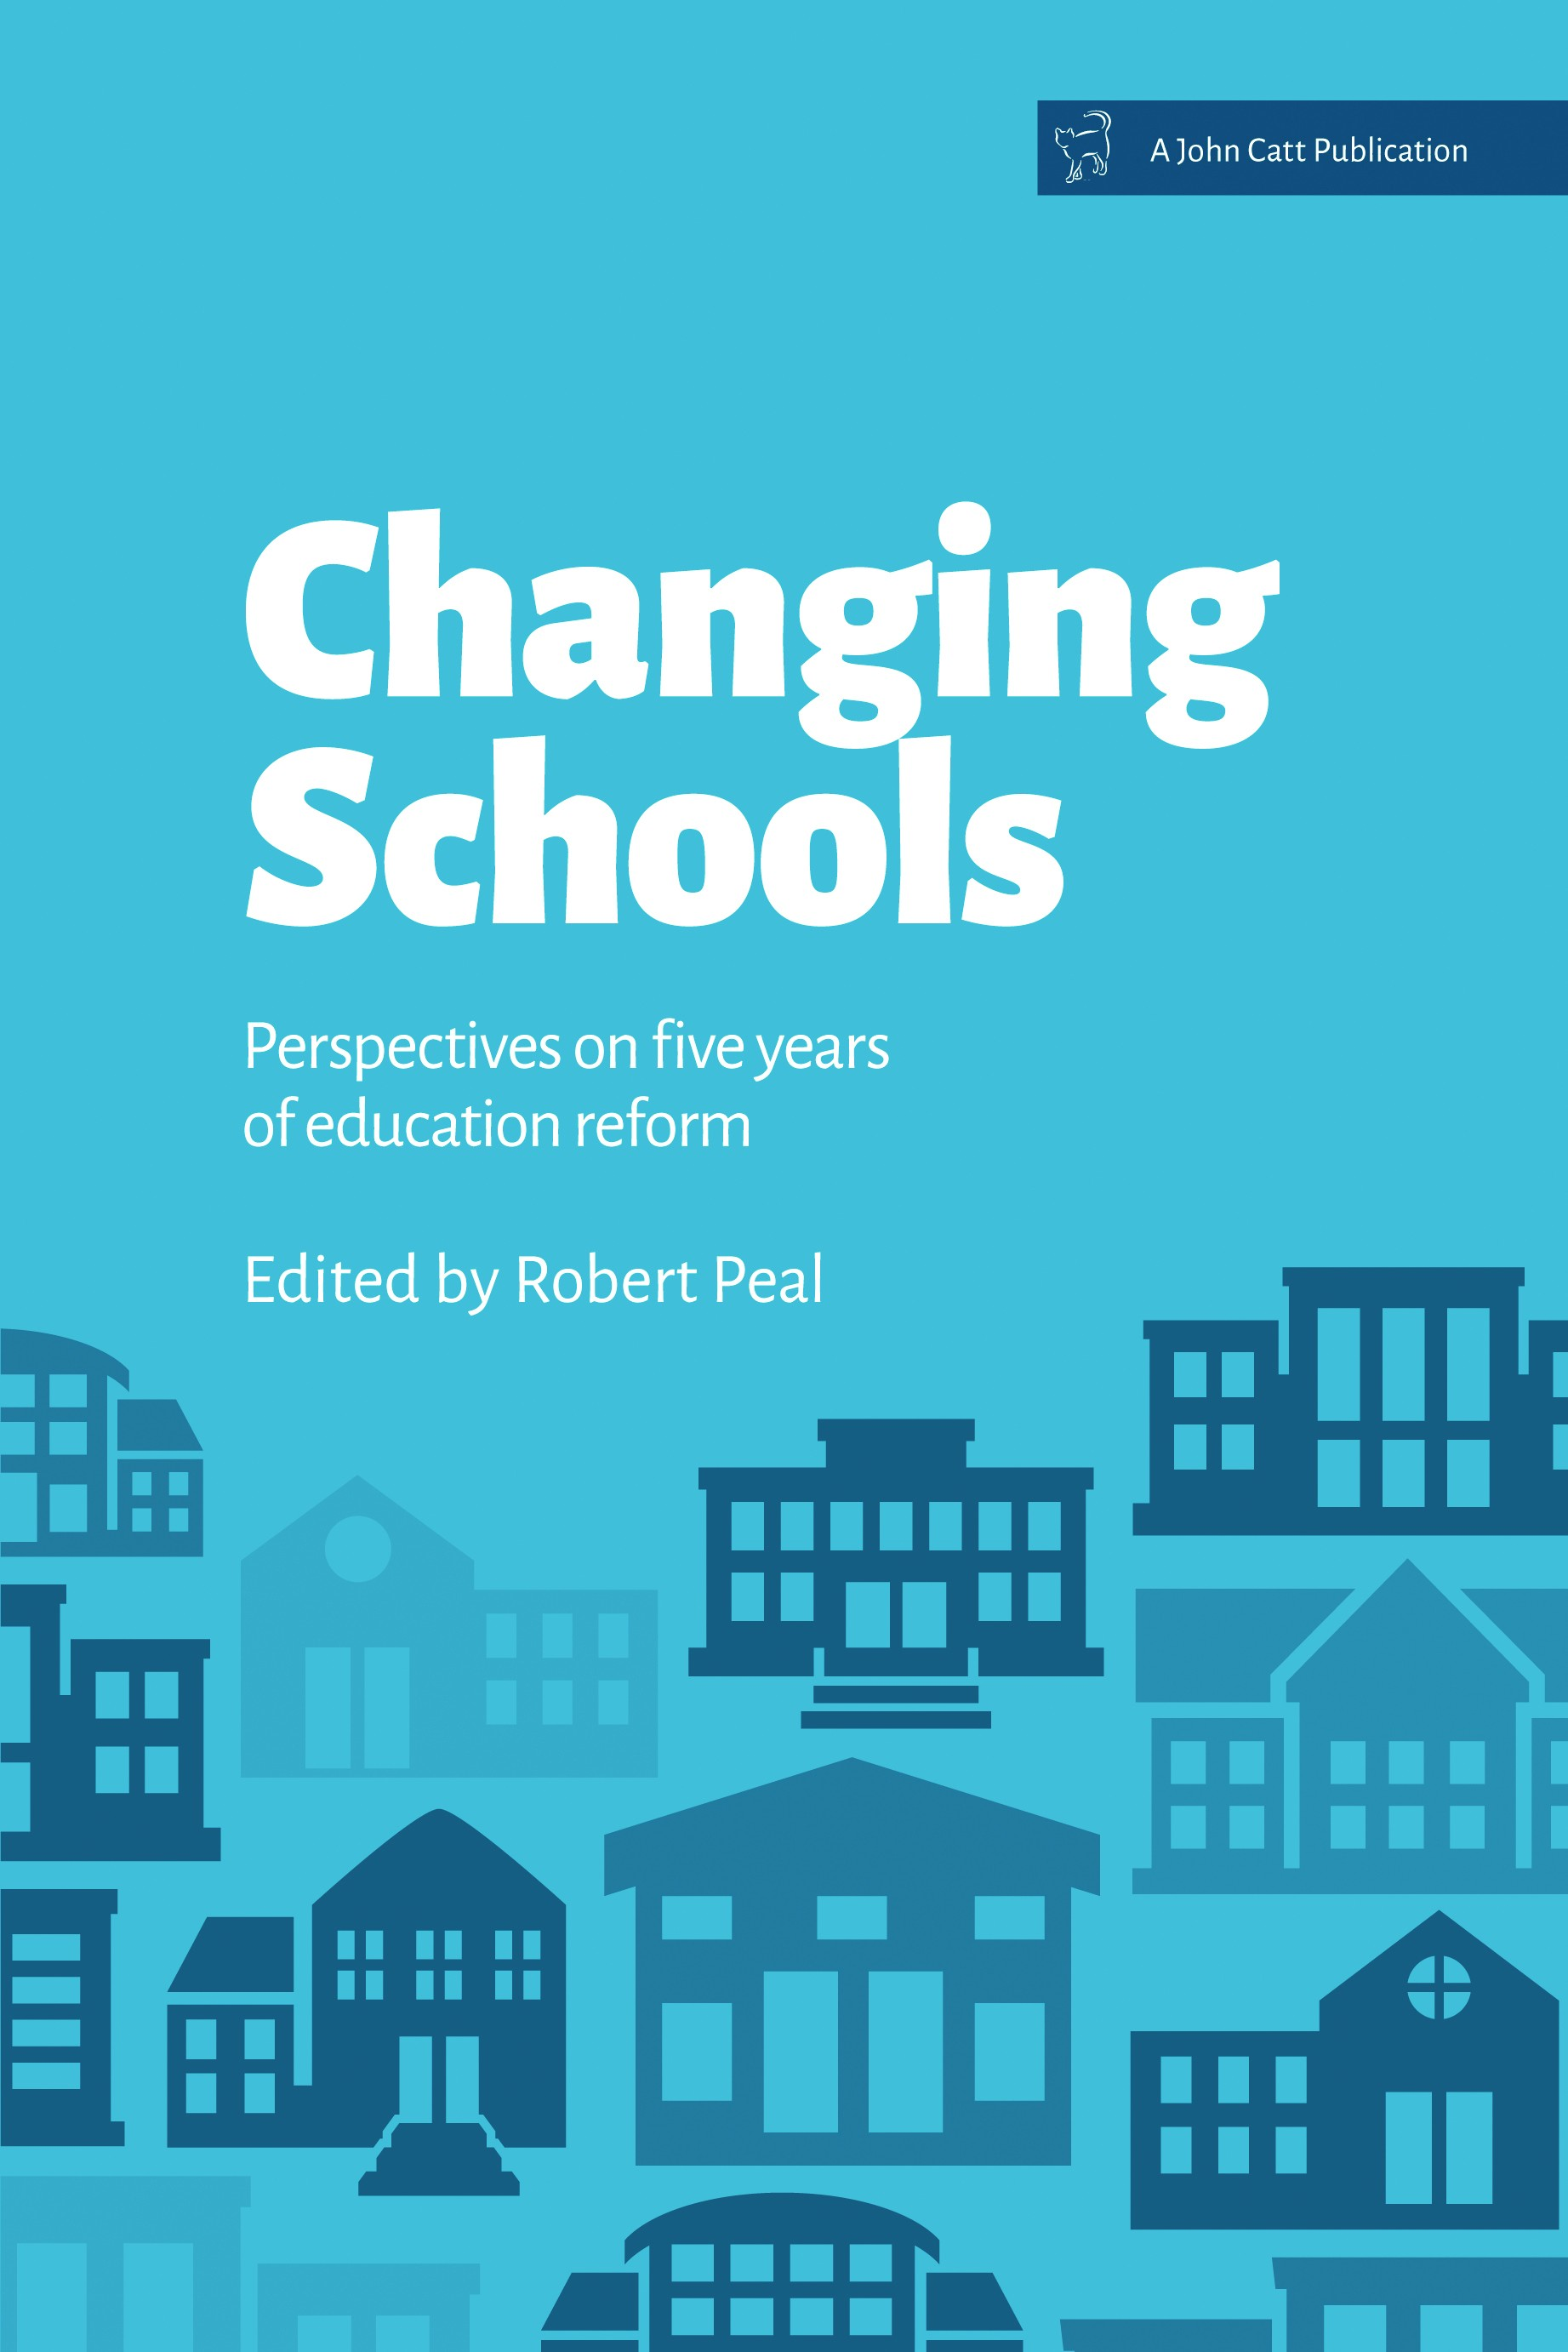 changing schools The school of system change connects and inspires people it equips them with the tools they need to bring about transformational change and build a sustainable future.